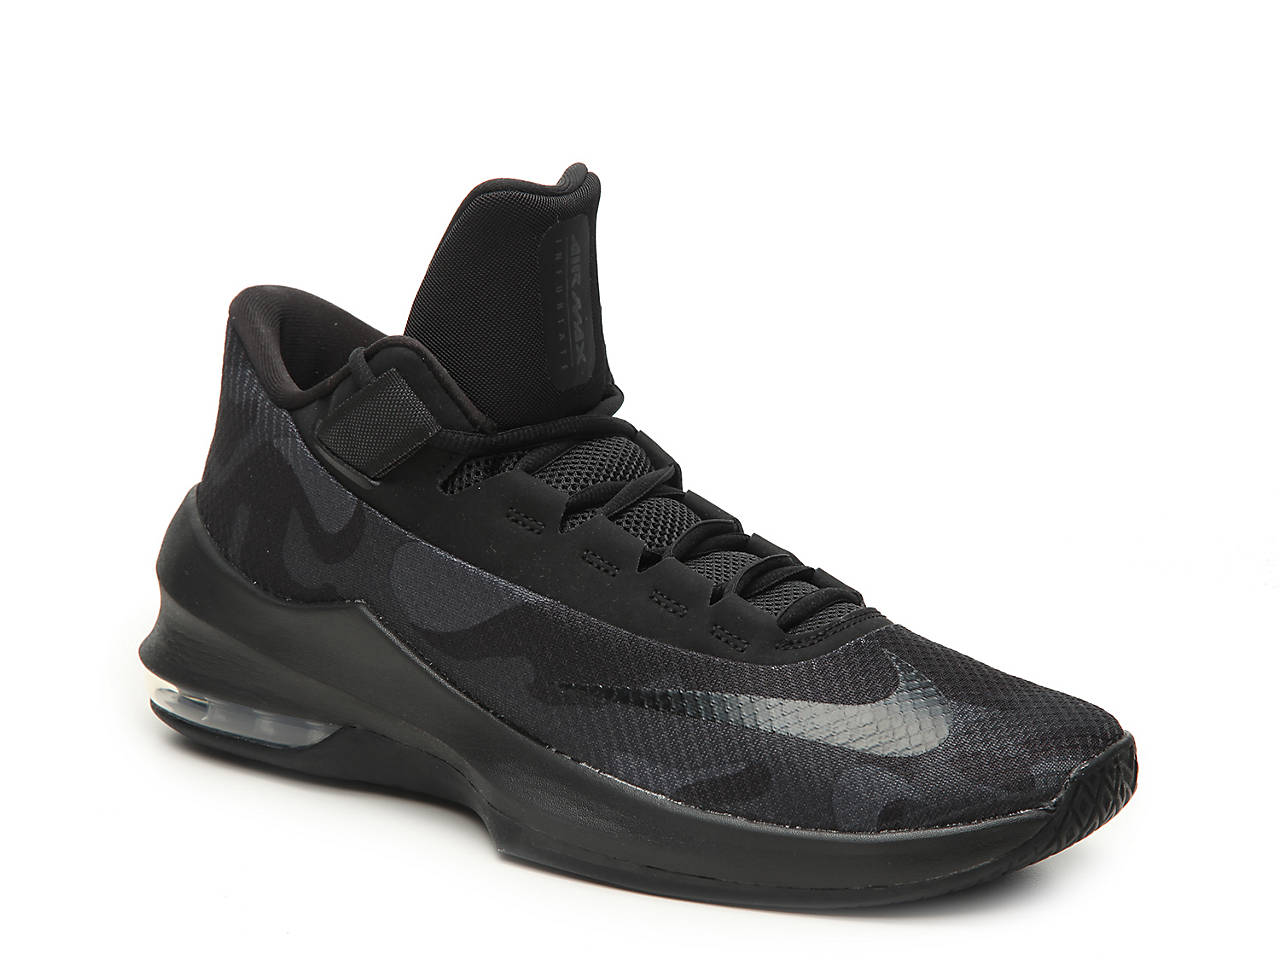 ae98bc6d58 Nike Air Max Infuriate 2 Mid Basketball Shoe - Men's Men's Shoes | DSW